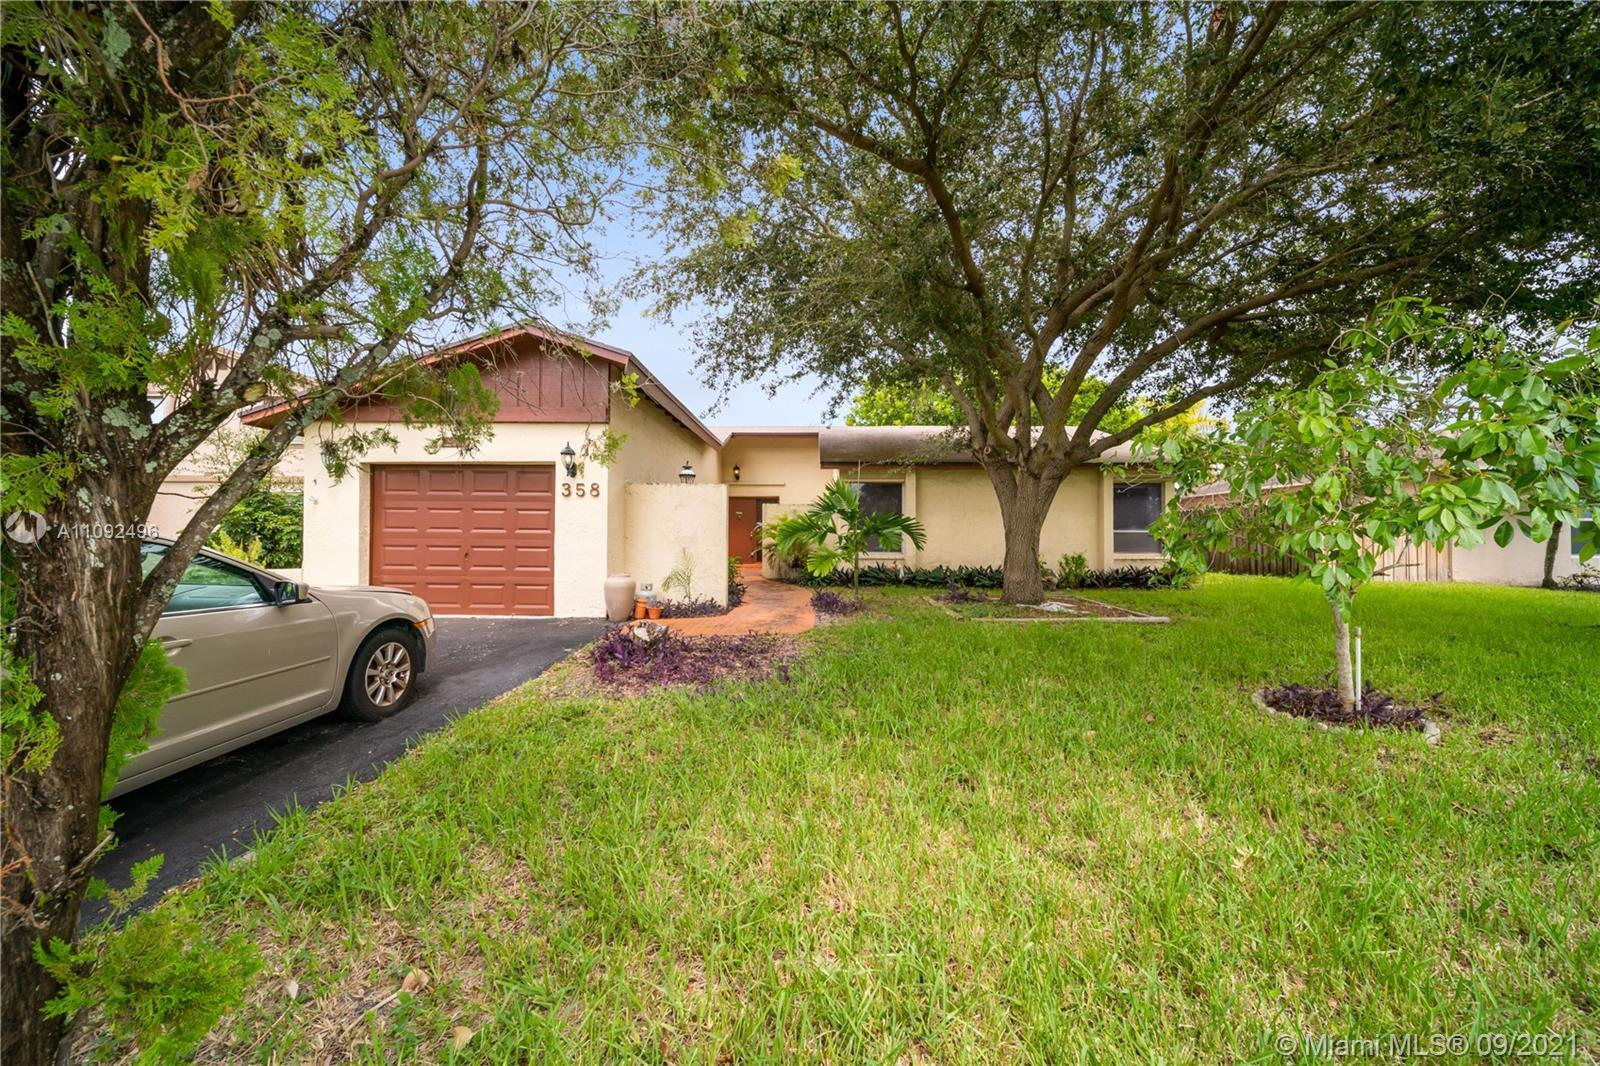 Charming 3 bedroom, 2 bathroom one story single family home in the heart of Deerfield Beach. This lo